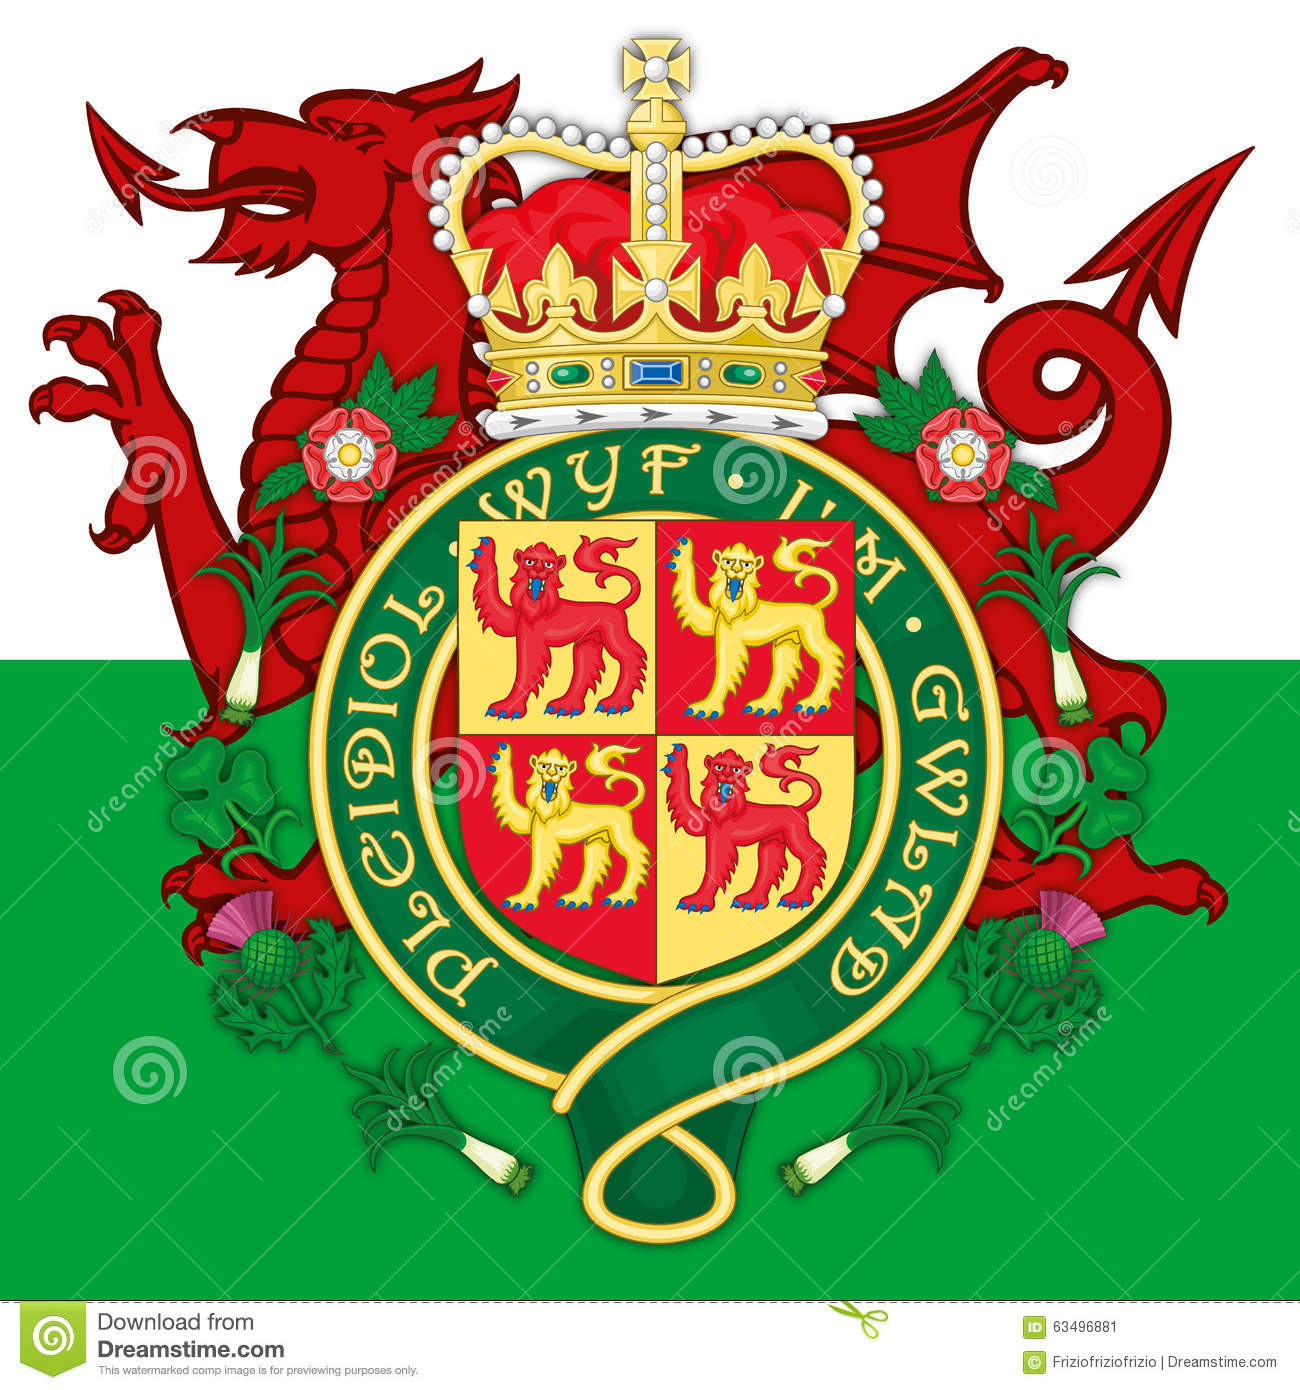 Wales coat of arms and flag stock image image of flag united wales coat of arms and flag buycottarizona